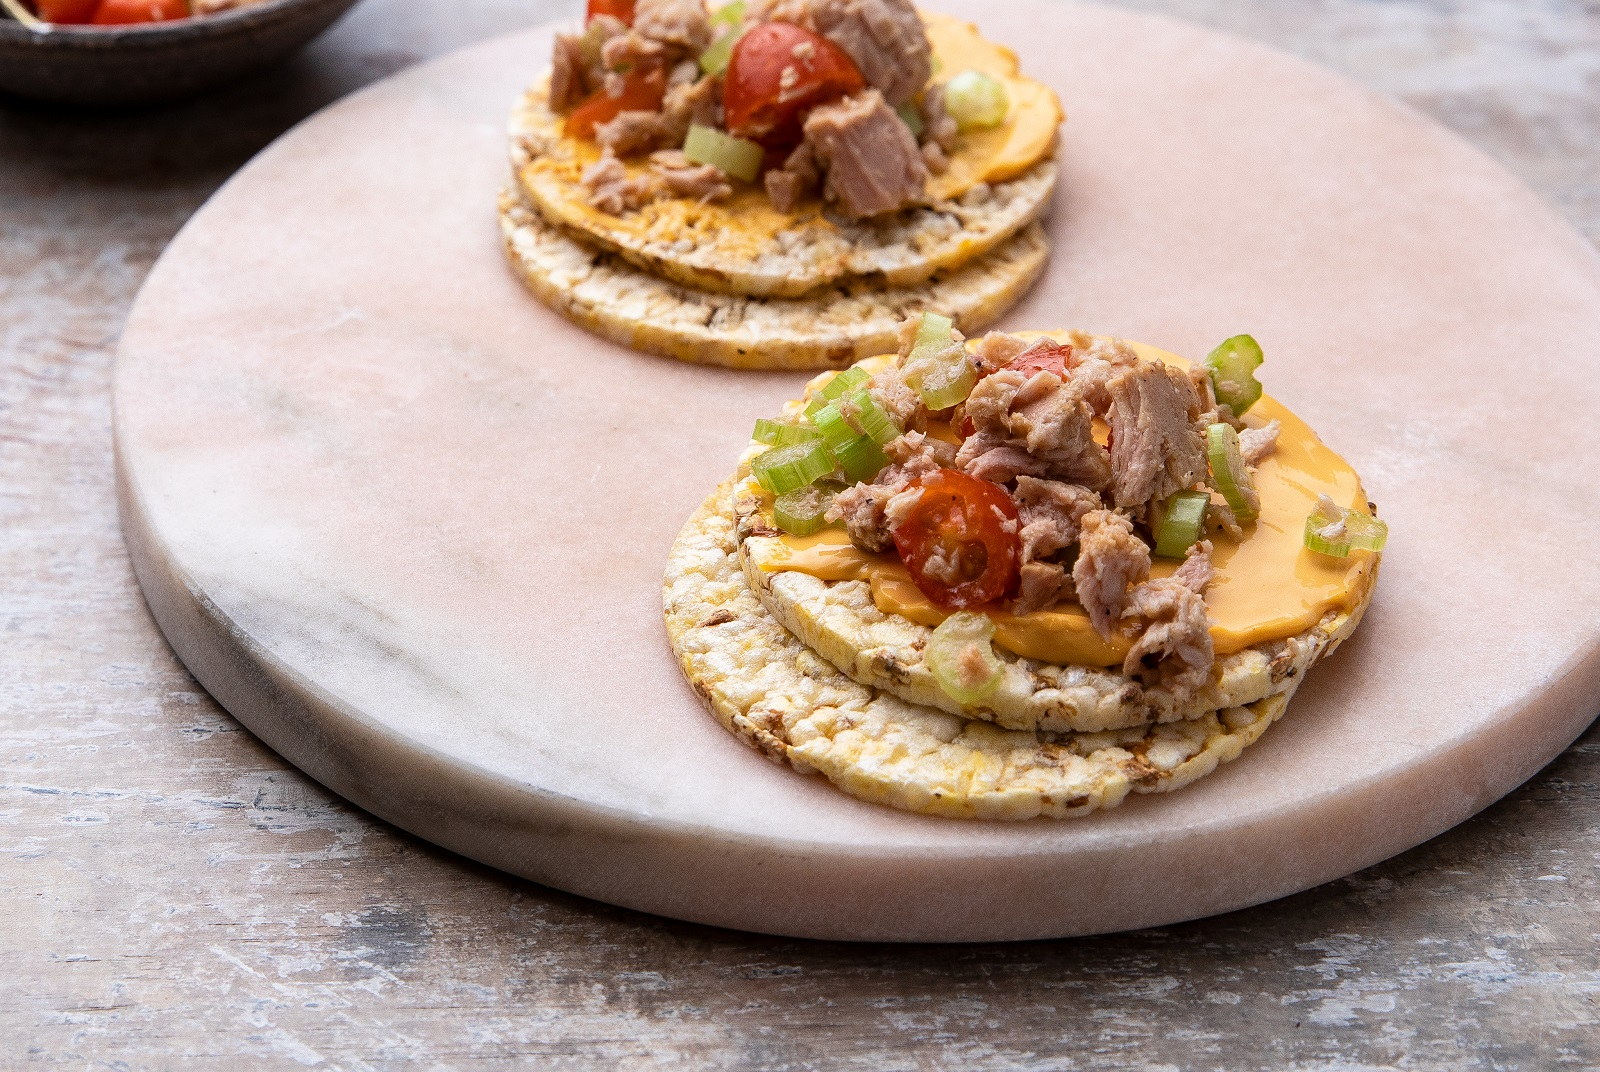 Cheese Spread, Celery, Cheery Tomatoes & Tuna on Corn Thins slices